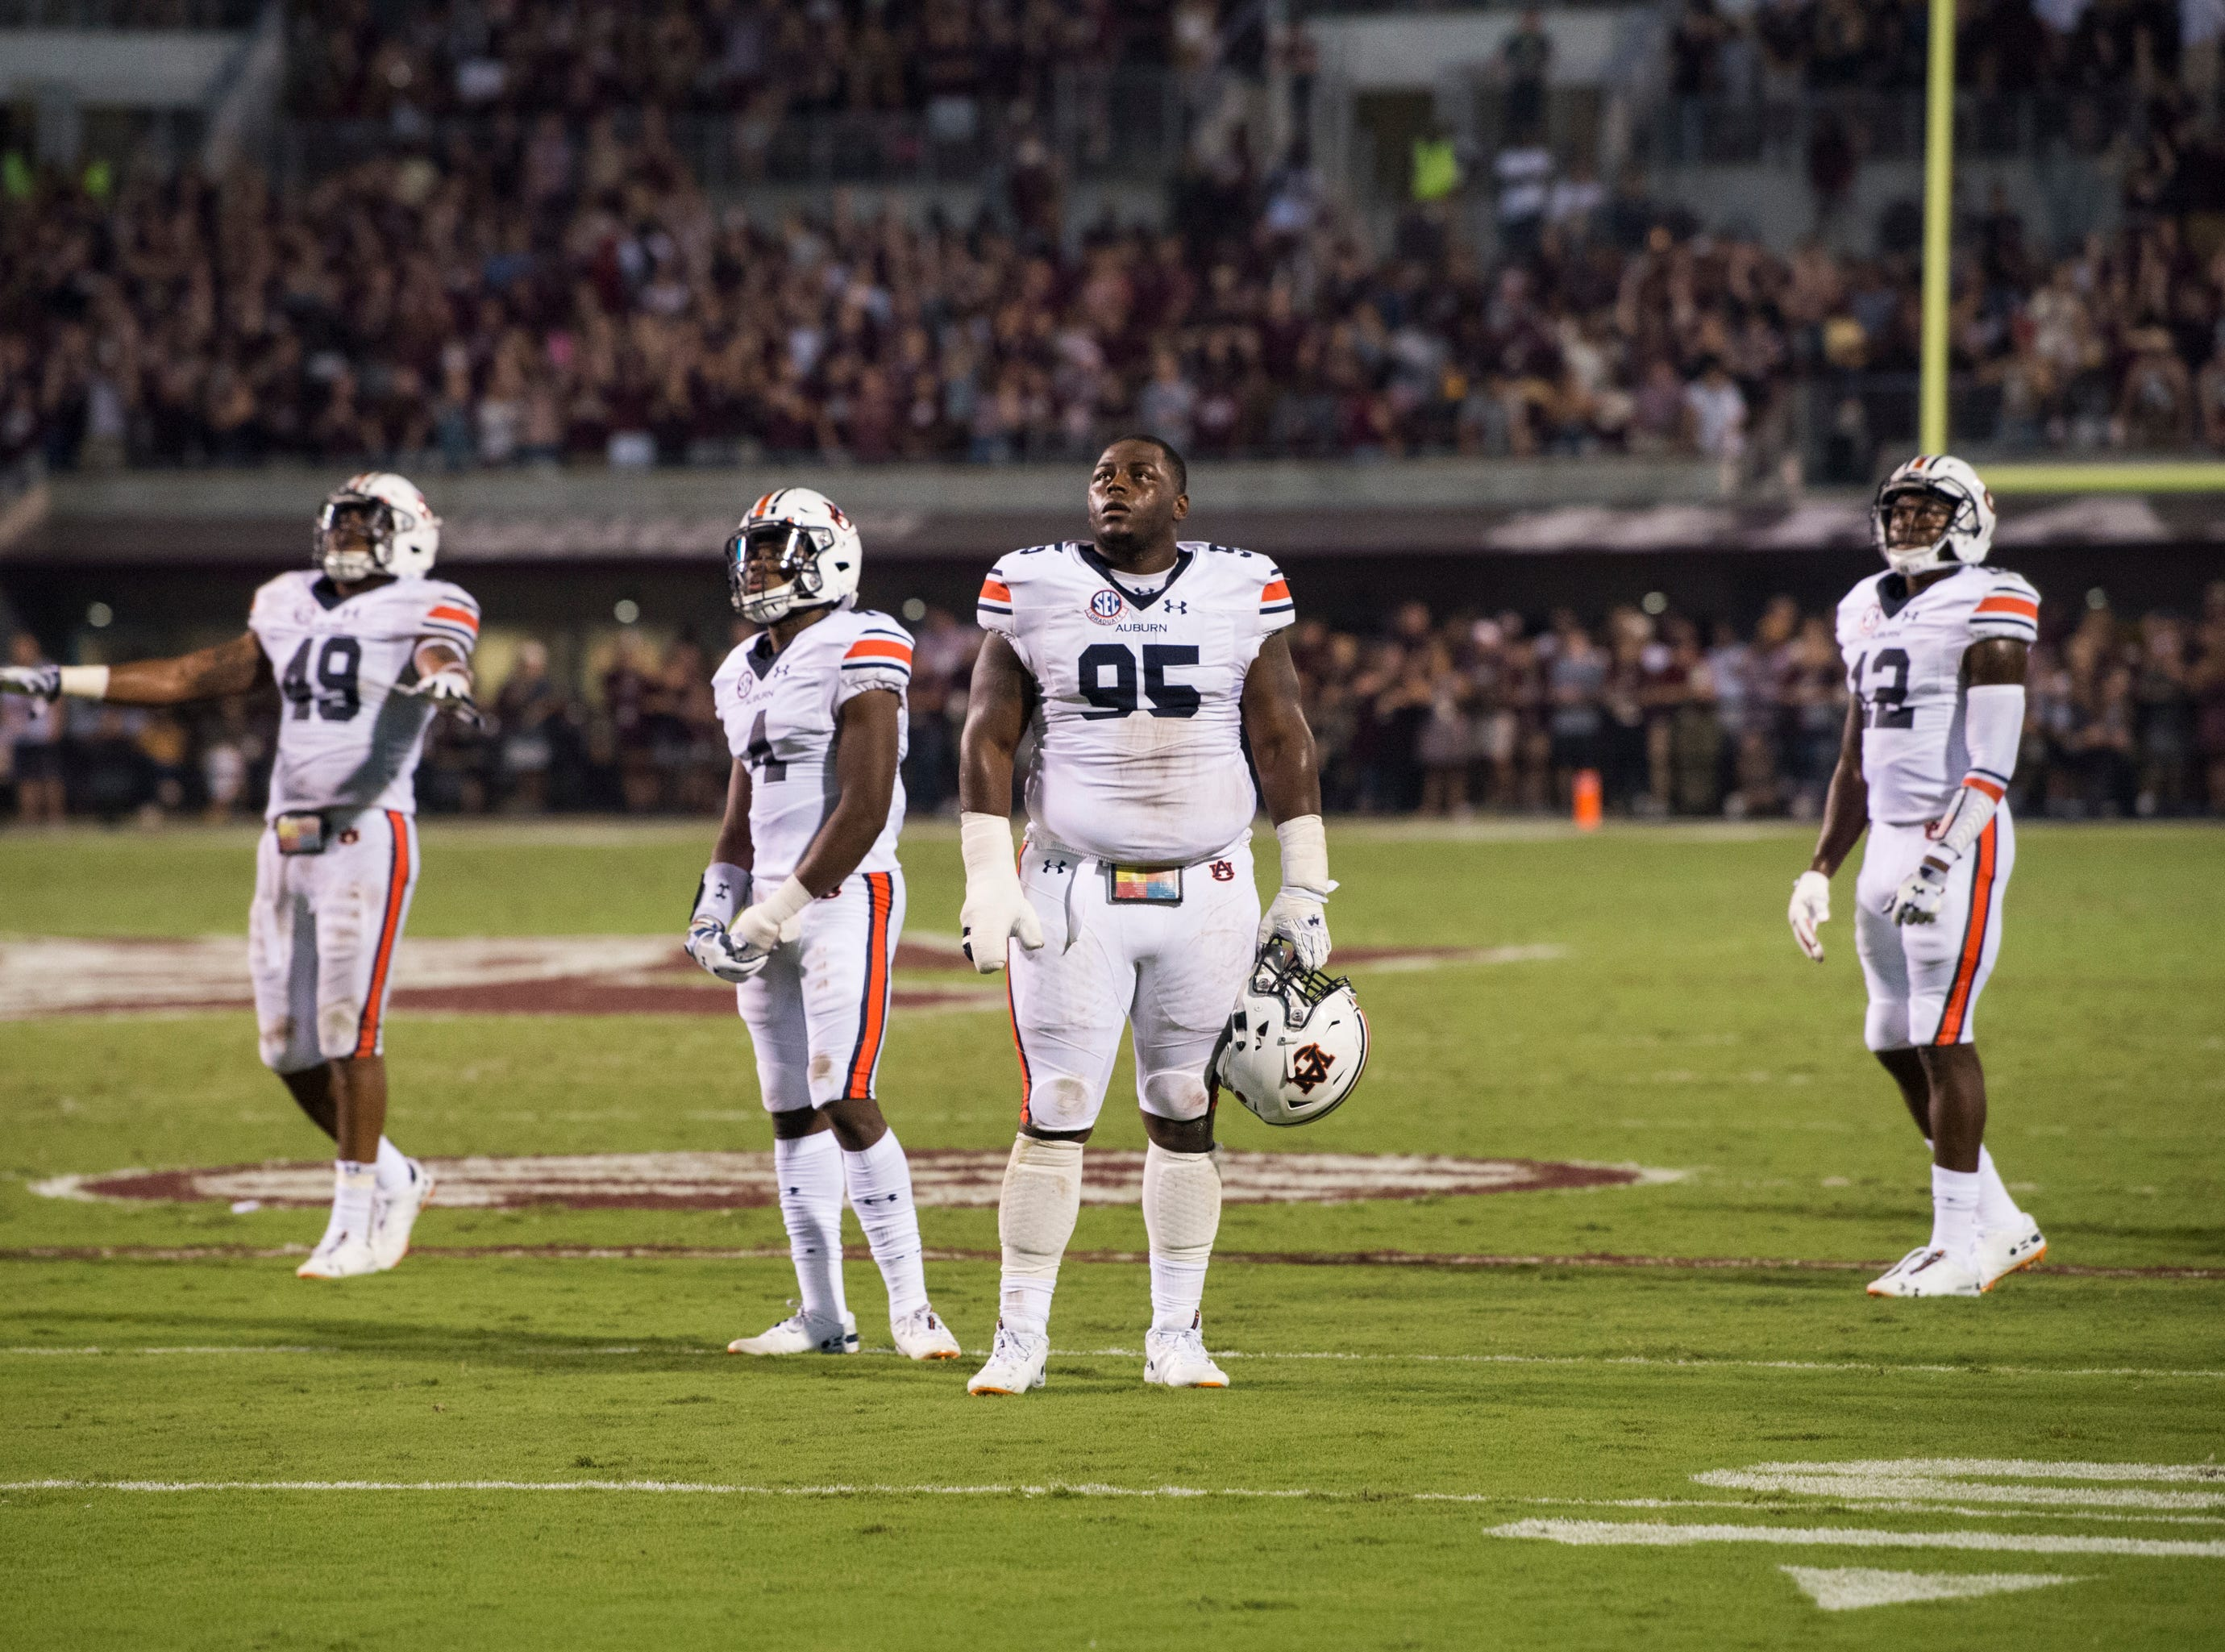 Auburn defense players watch the big screen as the officials review a Mississippi State touchdown at Davis Wade Stadium in Starkville, Miss., on Saturday, Oct. 6, 2018. Mississippi State leads Auburn 13-3 at halftime.